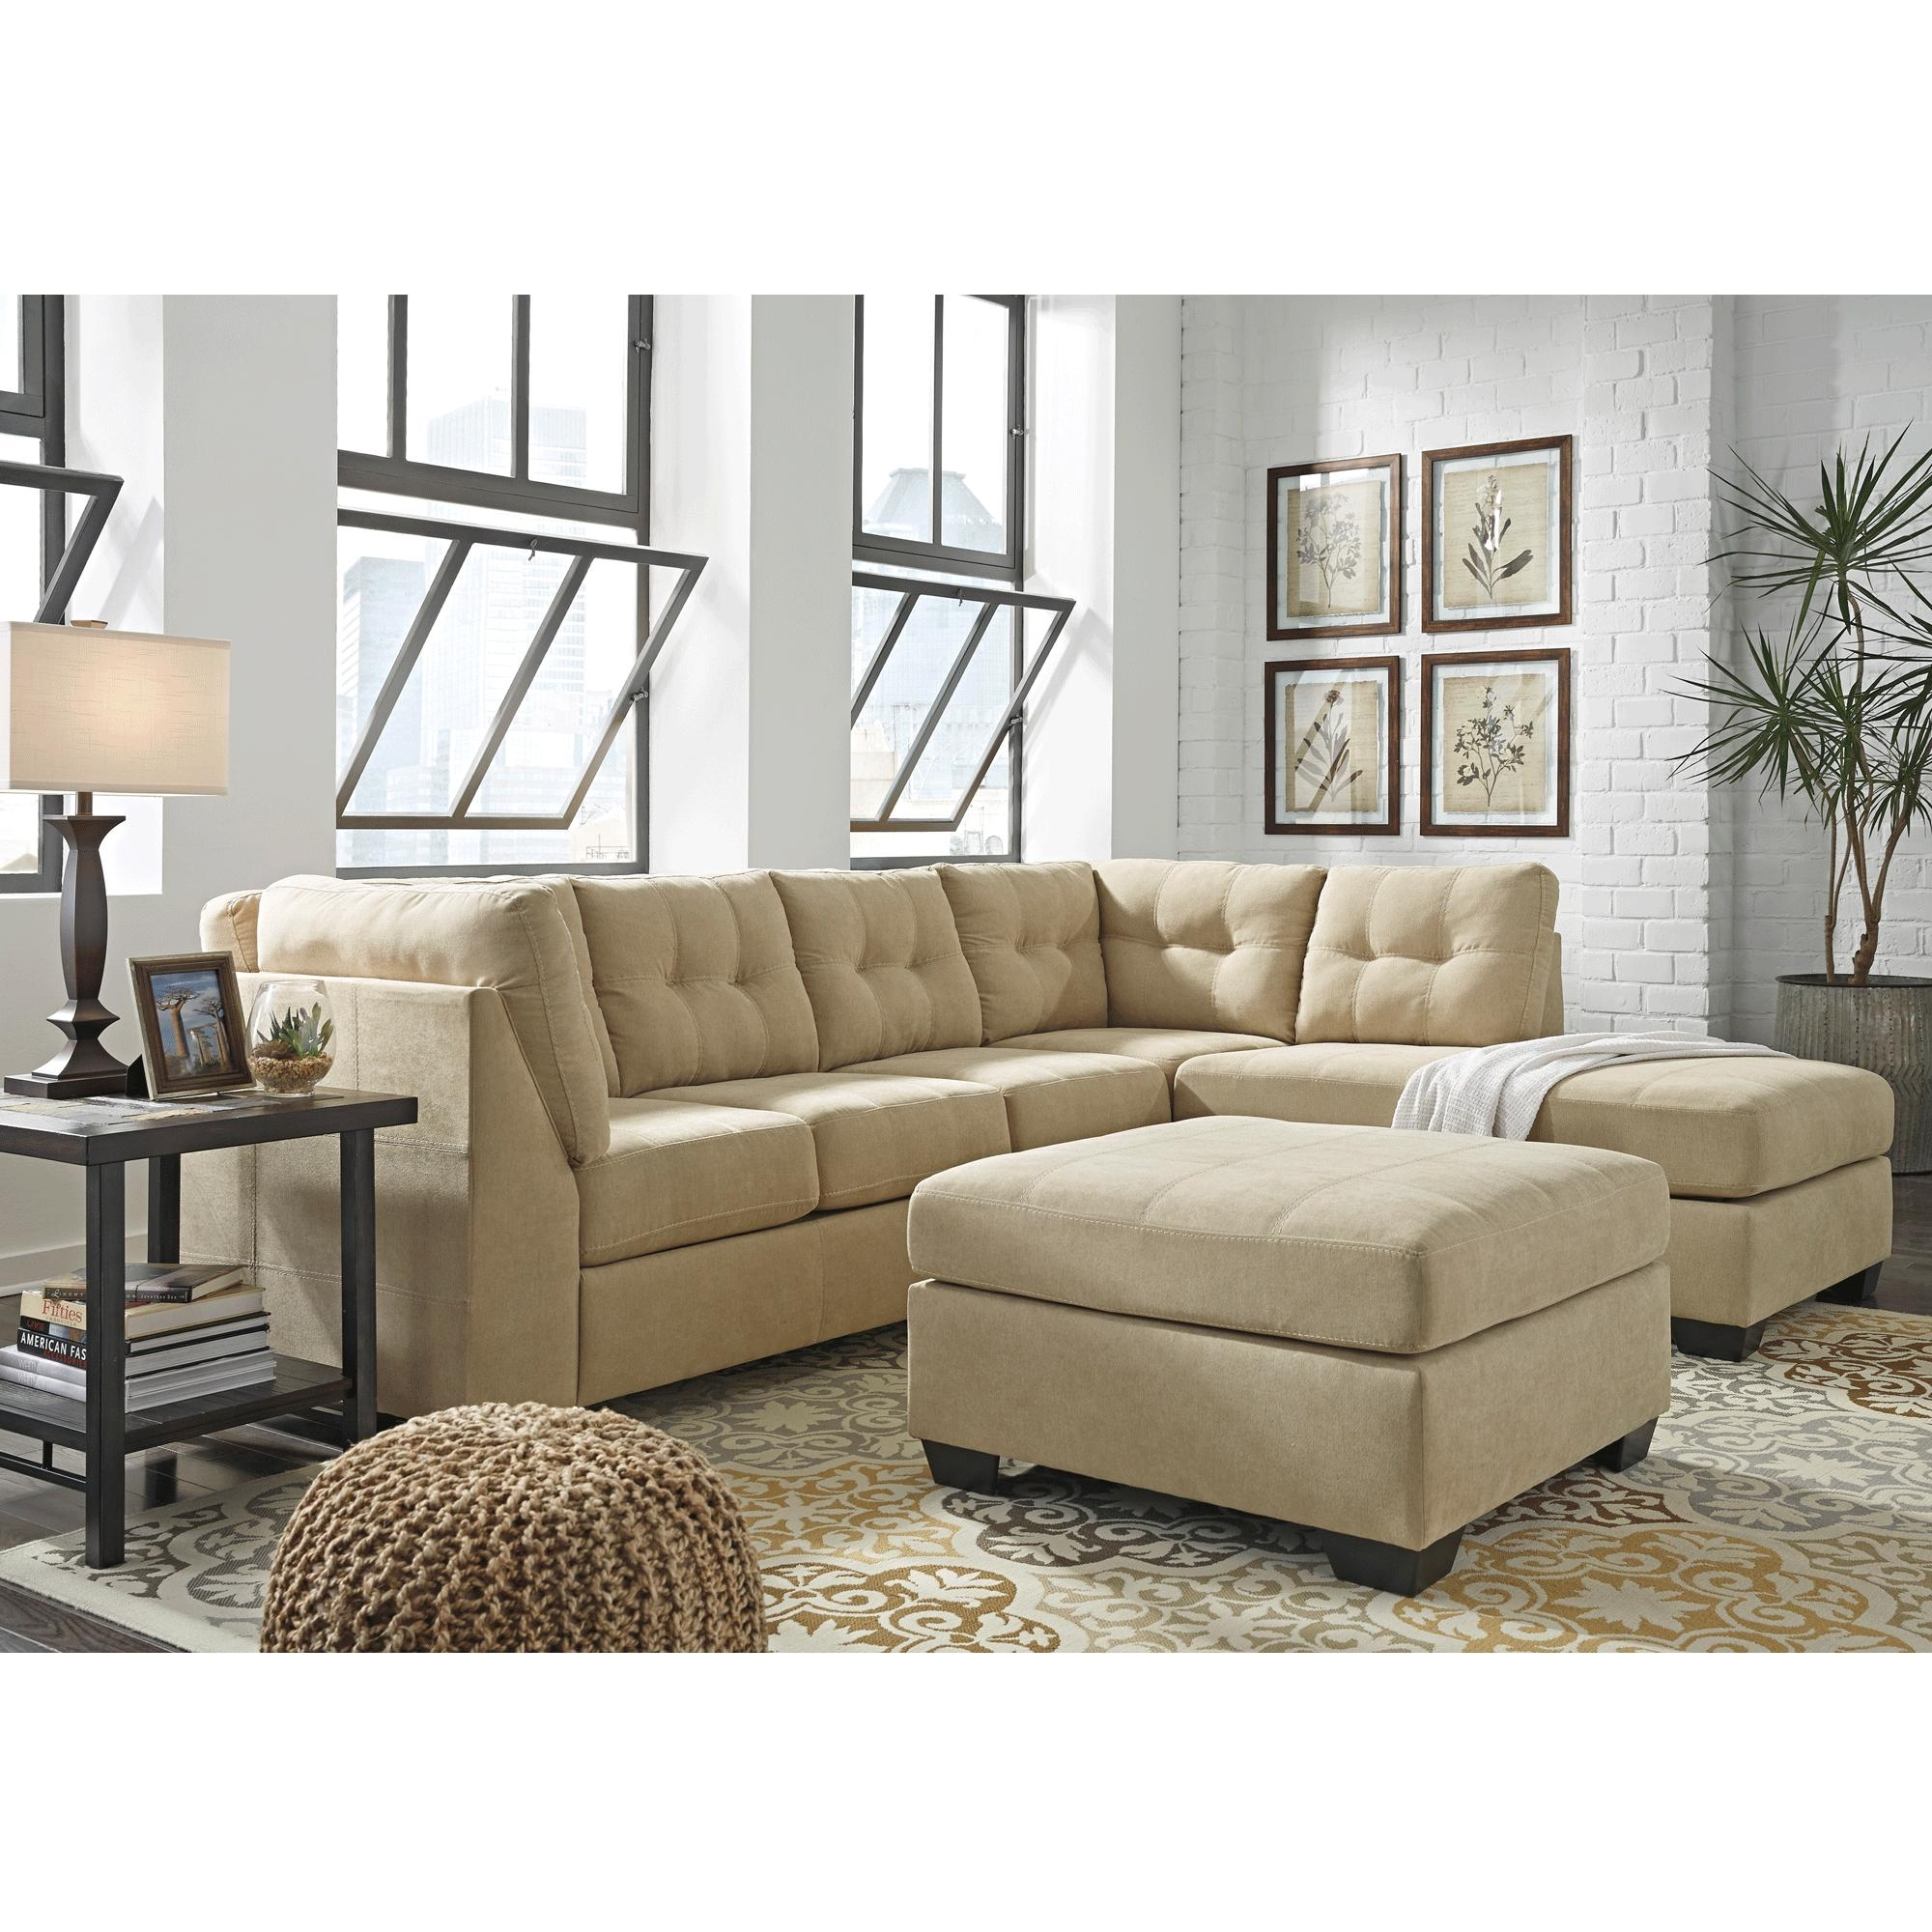 Sofas Center : Fashionable Down Sectional Sofa Color Options Home Throughout Down Sectional Sofa (Image 13 of 15)